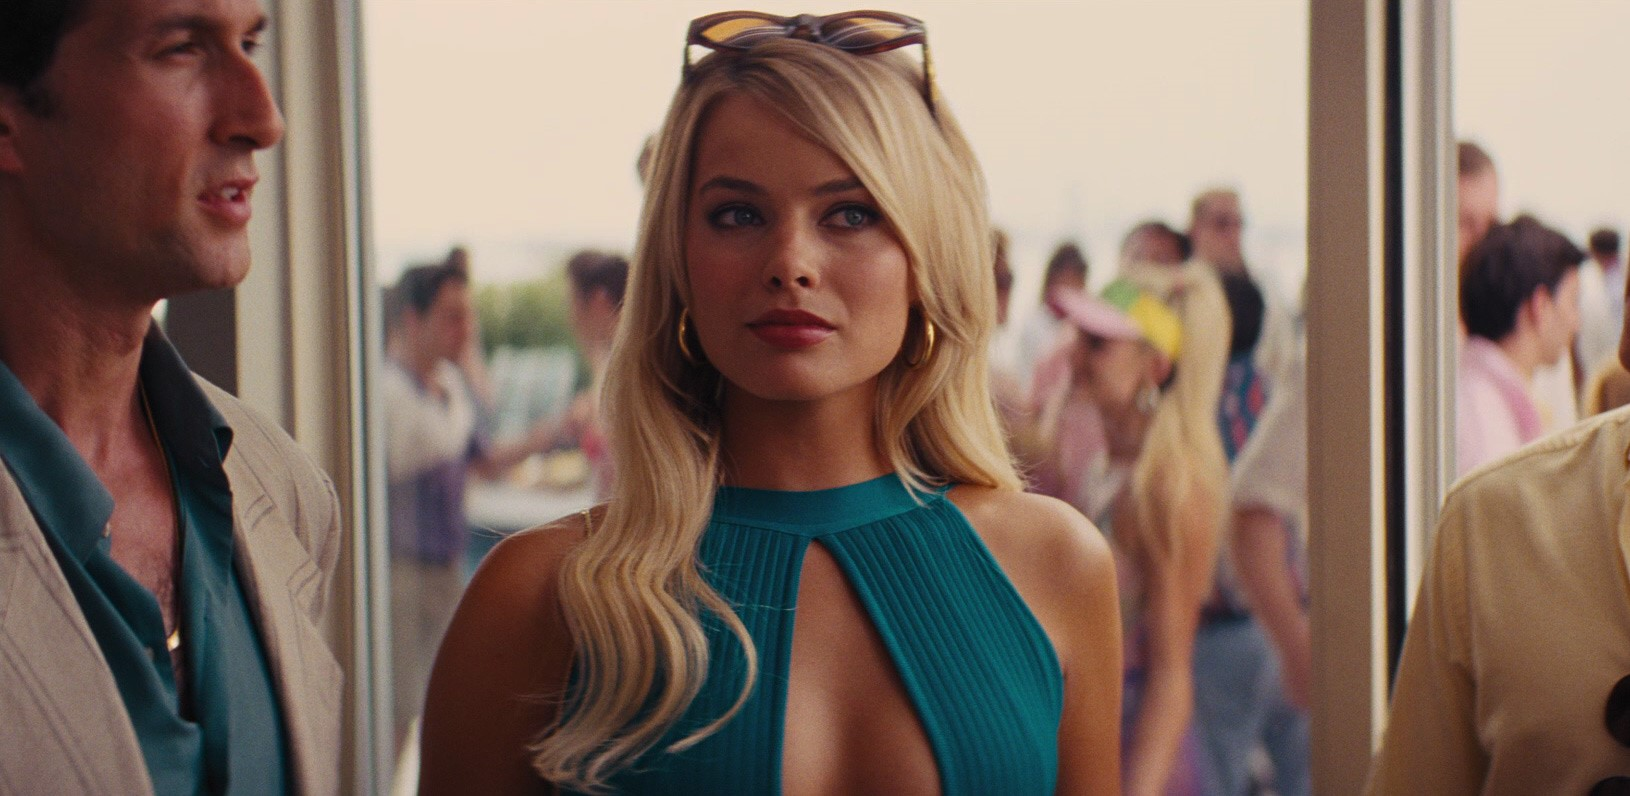 Aaron Lazar and Margot Robbie in The Wolf of Wall Street (2013)